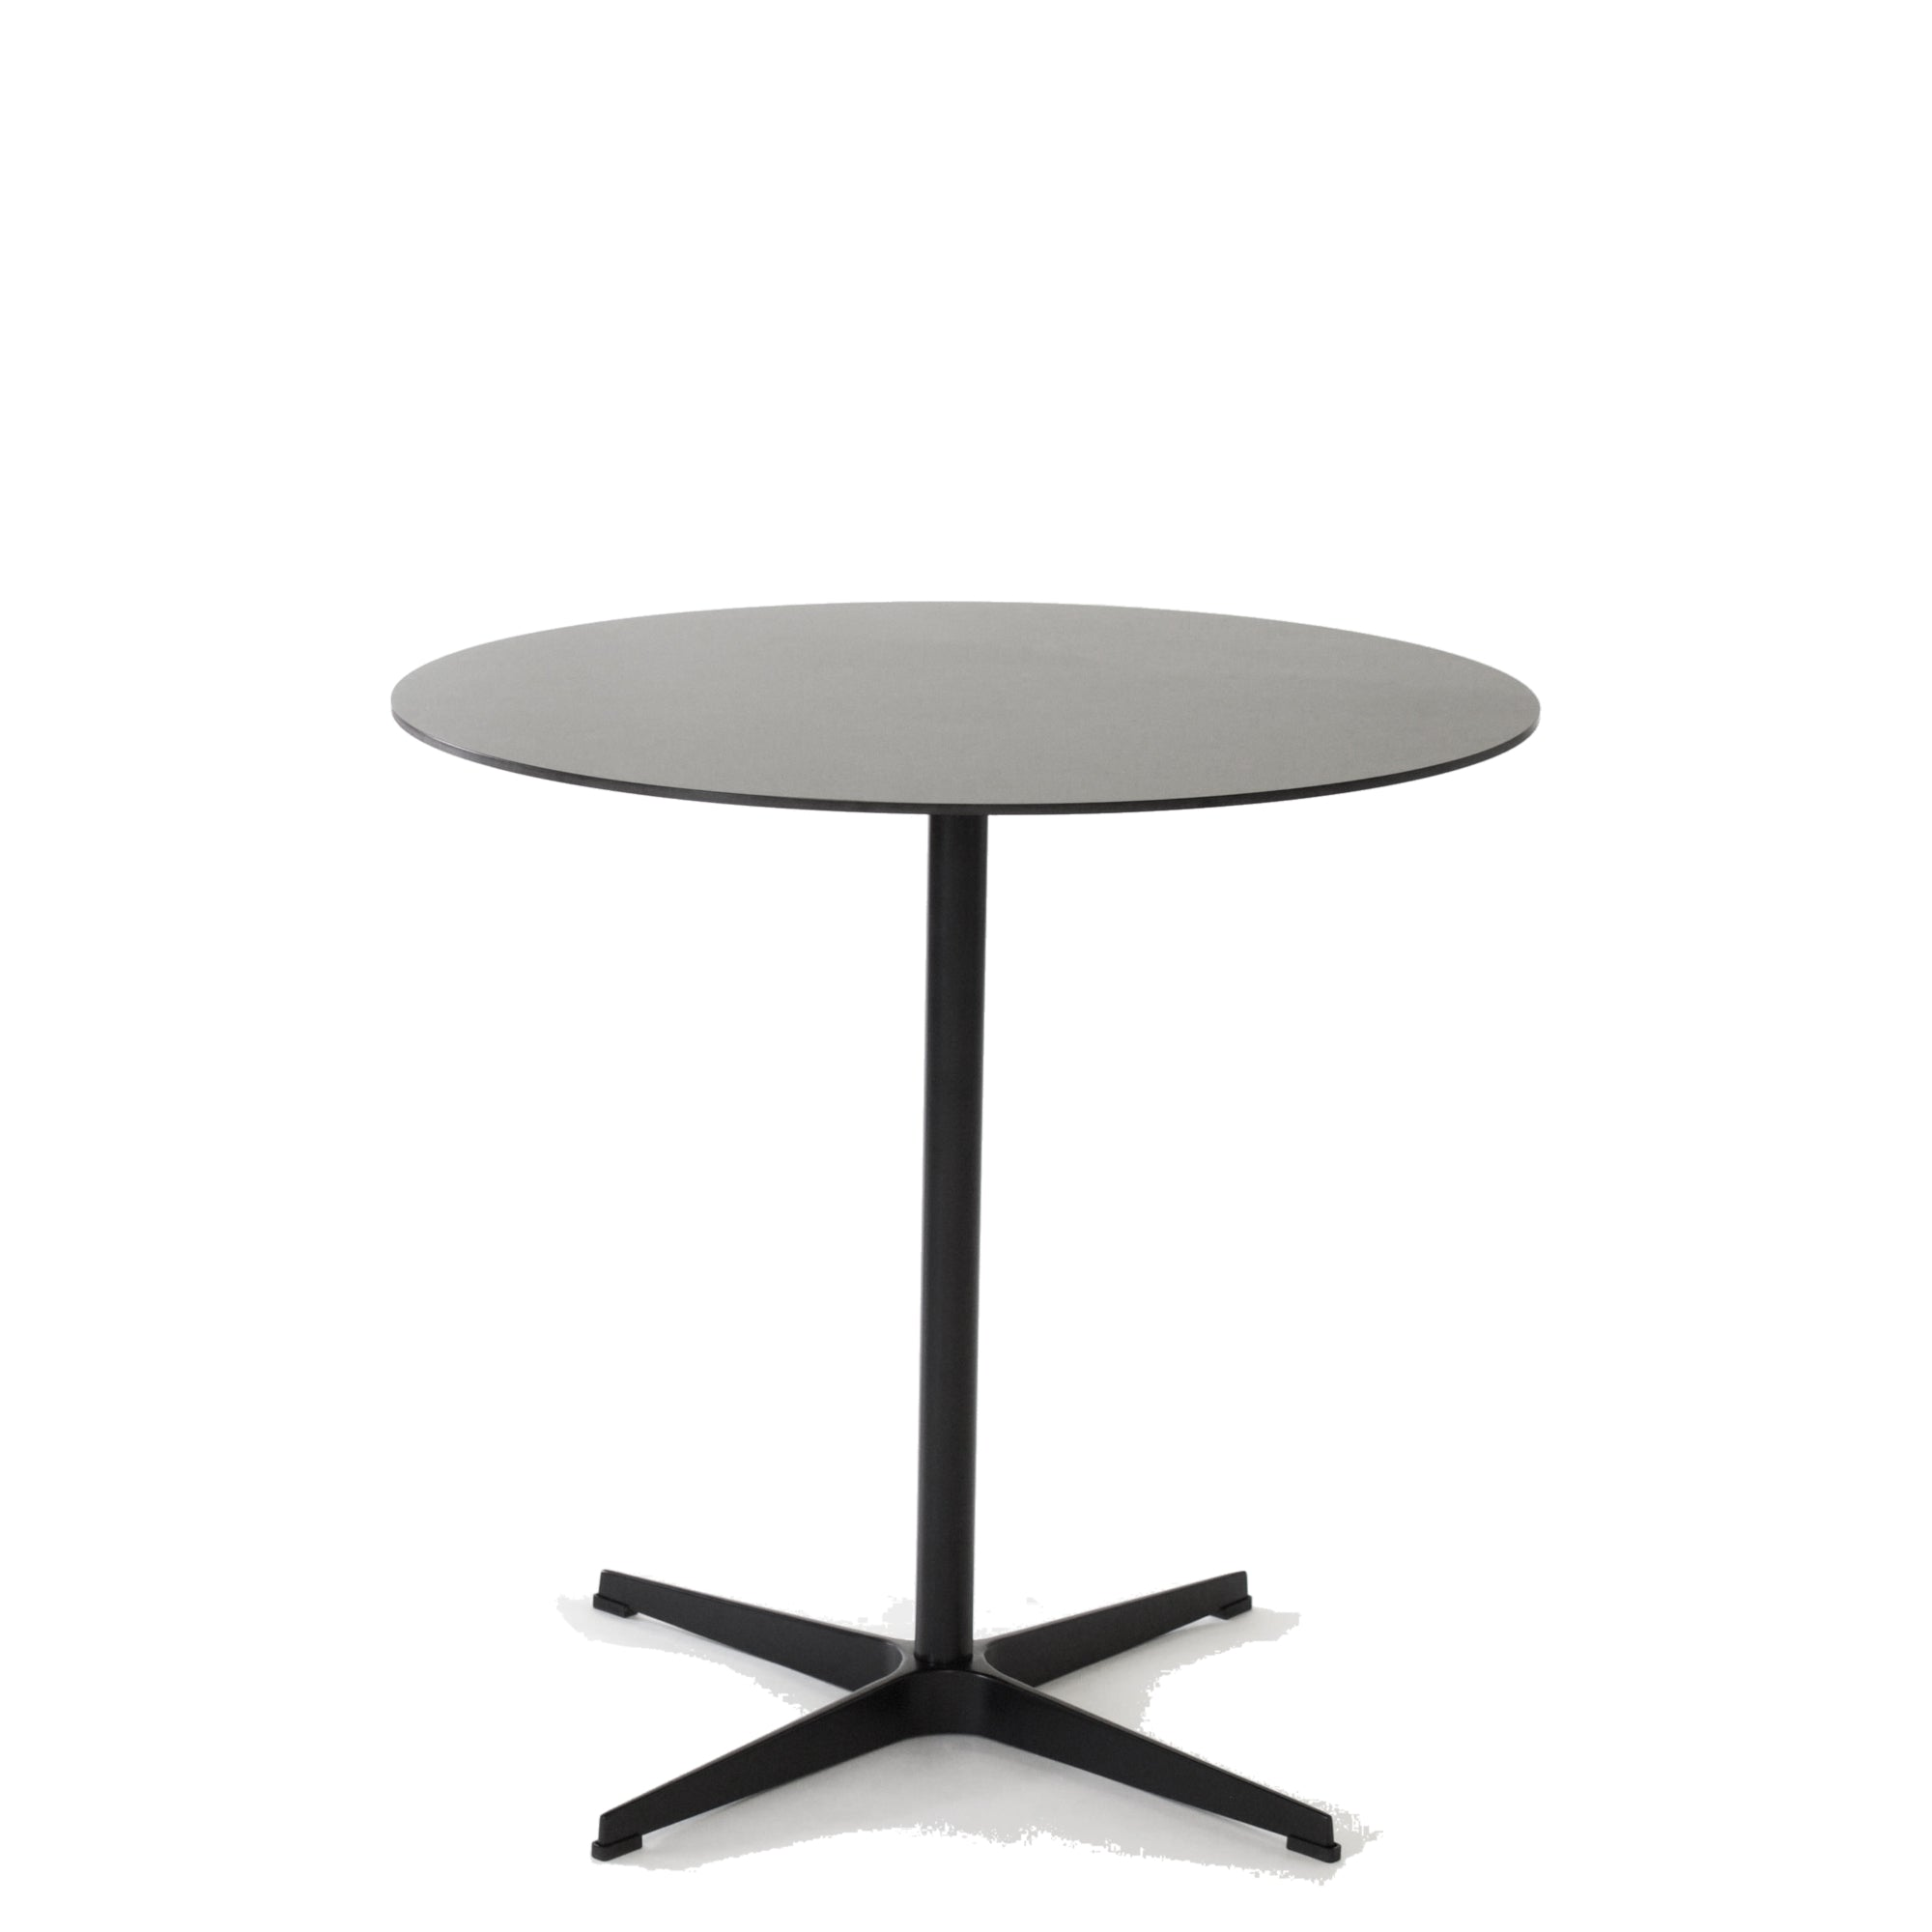 New Design Group Light Grey Office Round Cafe Table